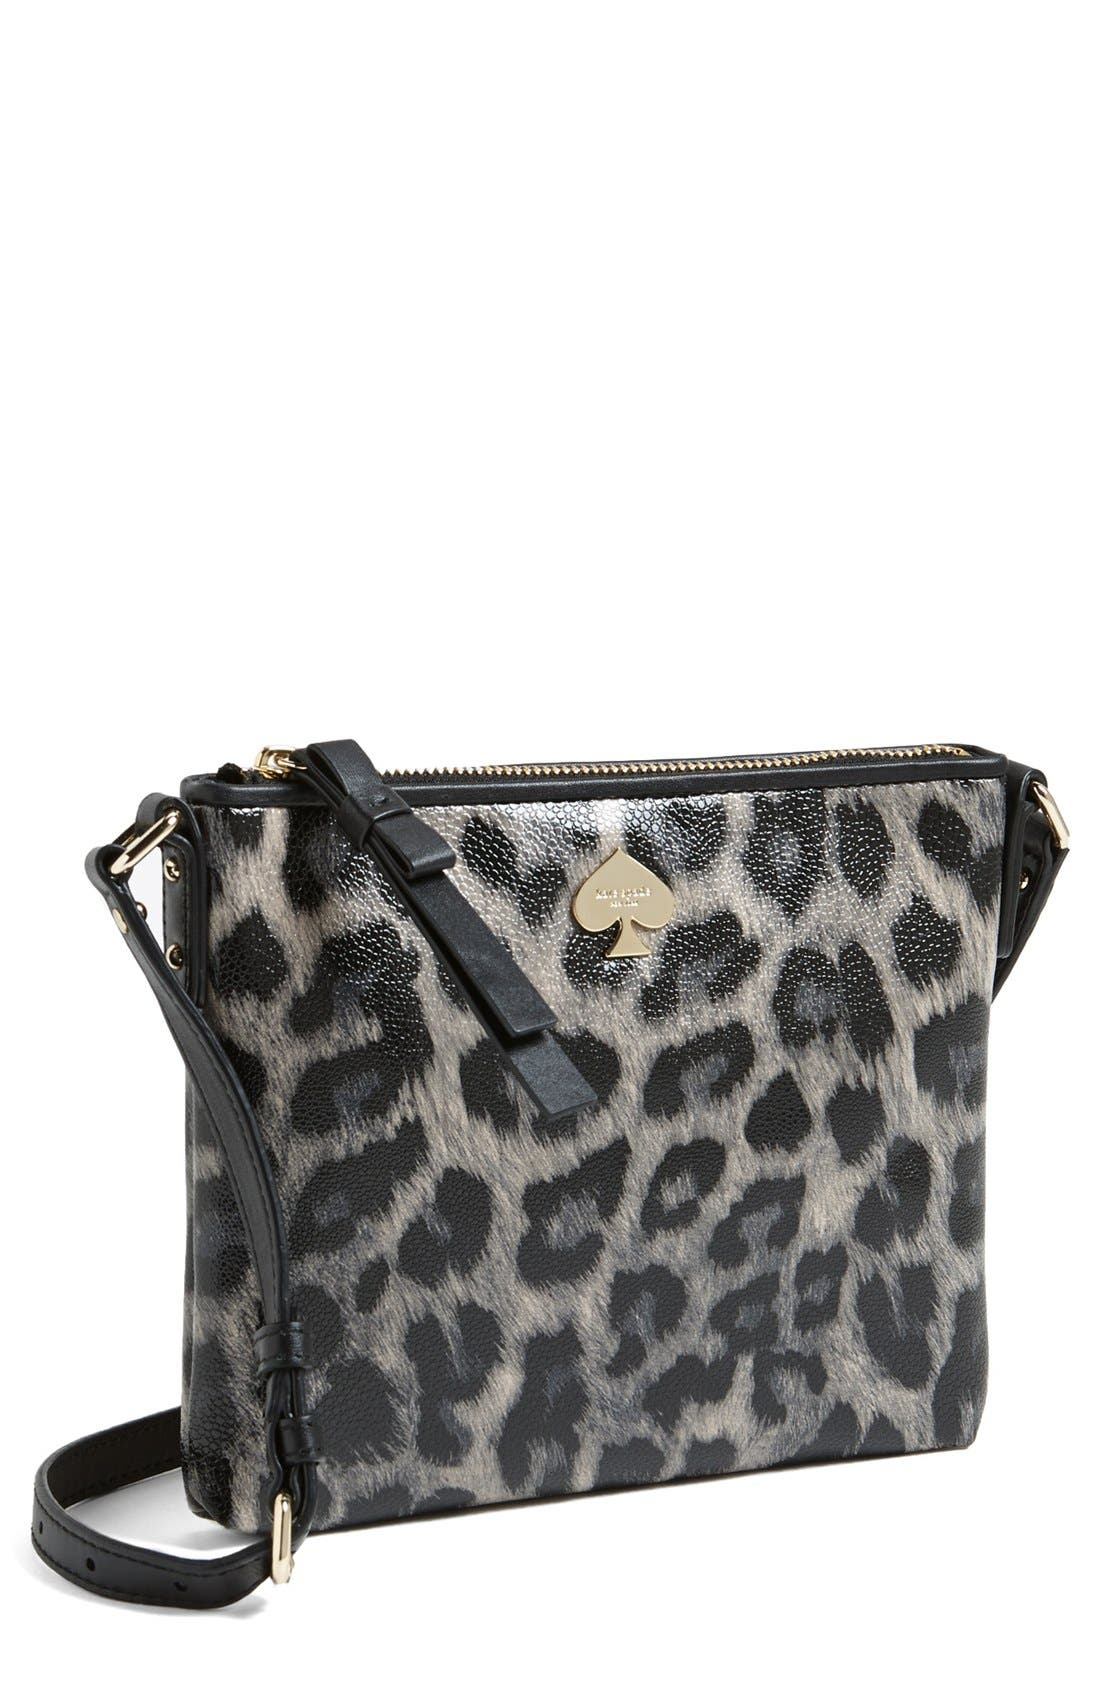 Alternate Image 1 Selected - kate spade new york 'leroy street - animal print tenley' crossbody bag